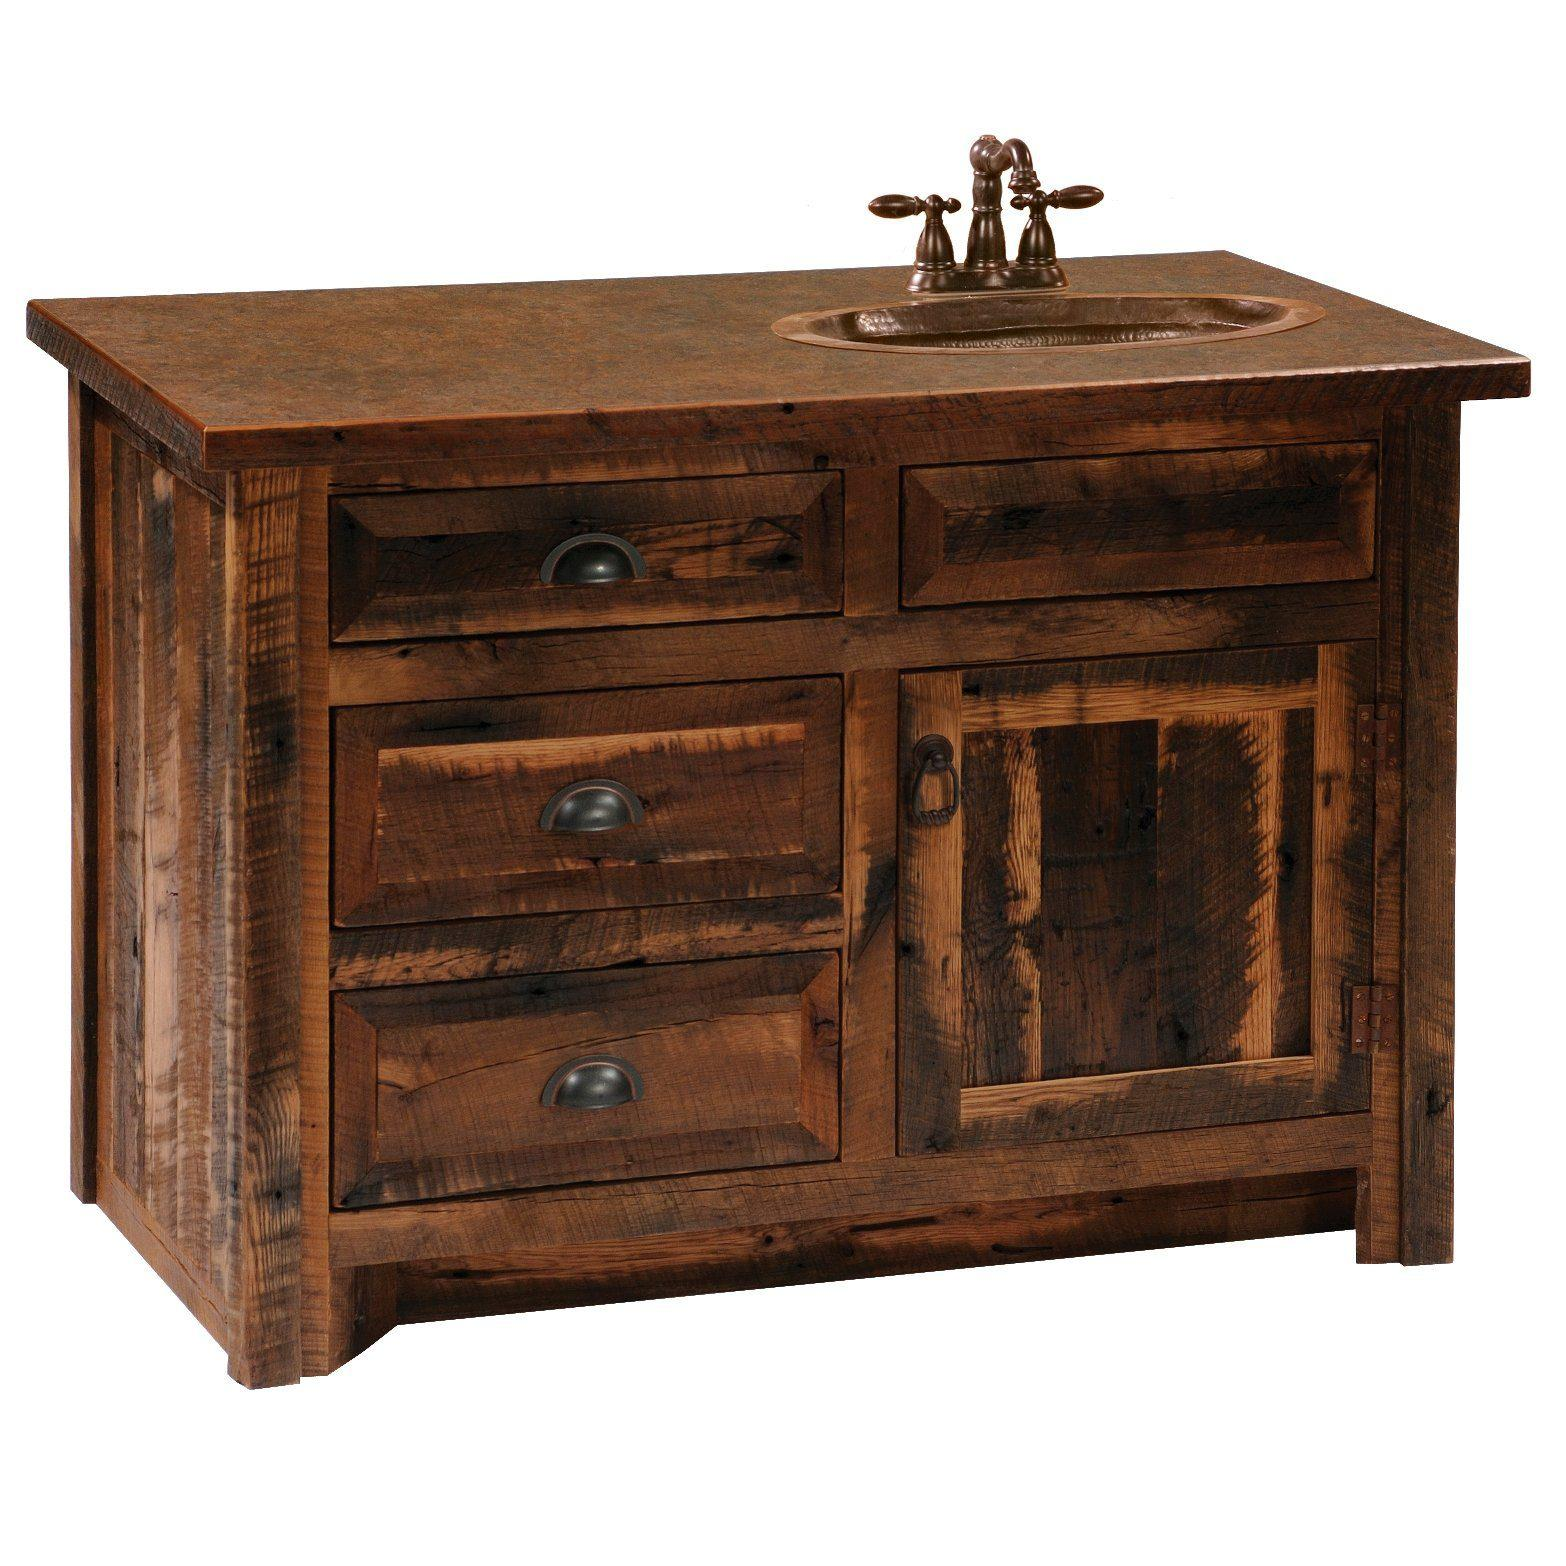 Barnwood Vanity Without Top 36 42 48 Inch Sink Left Right And Ce